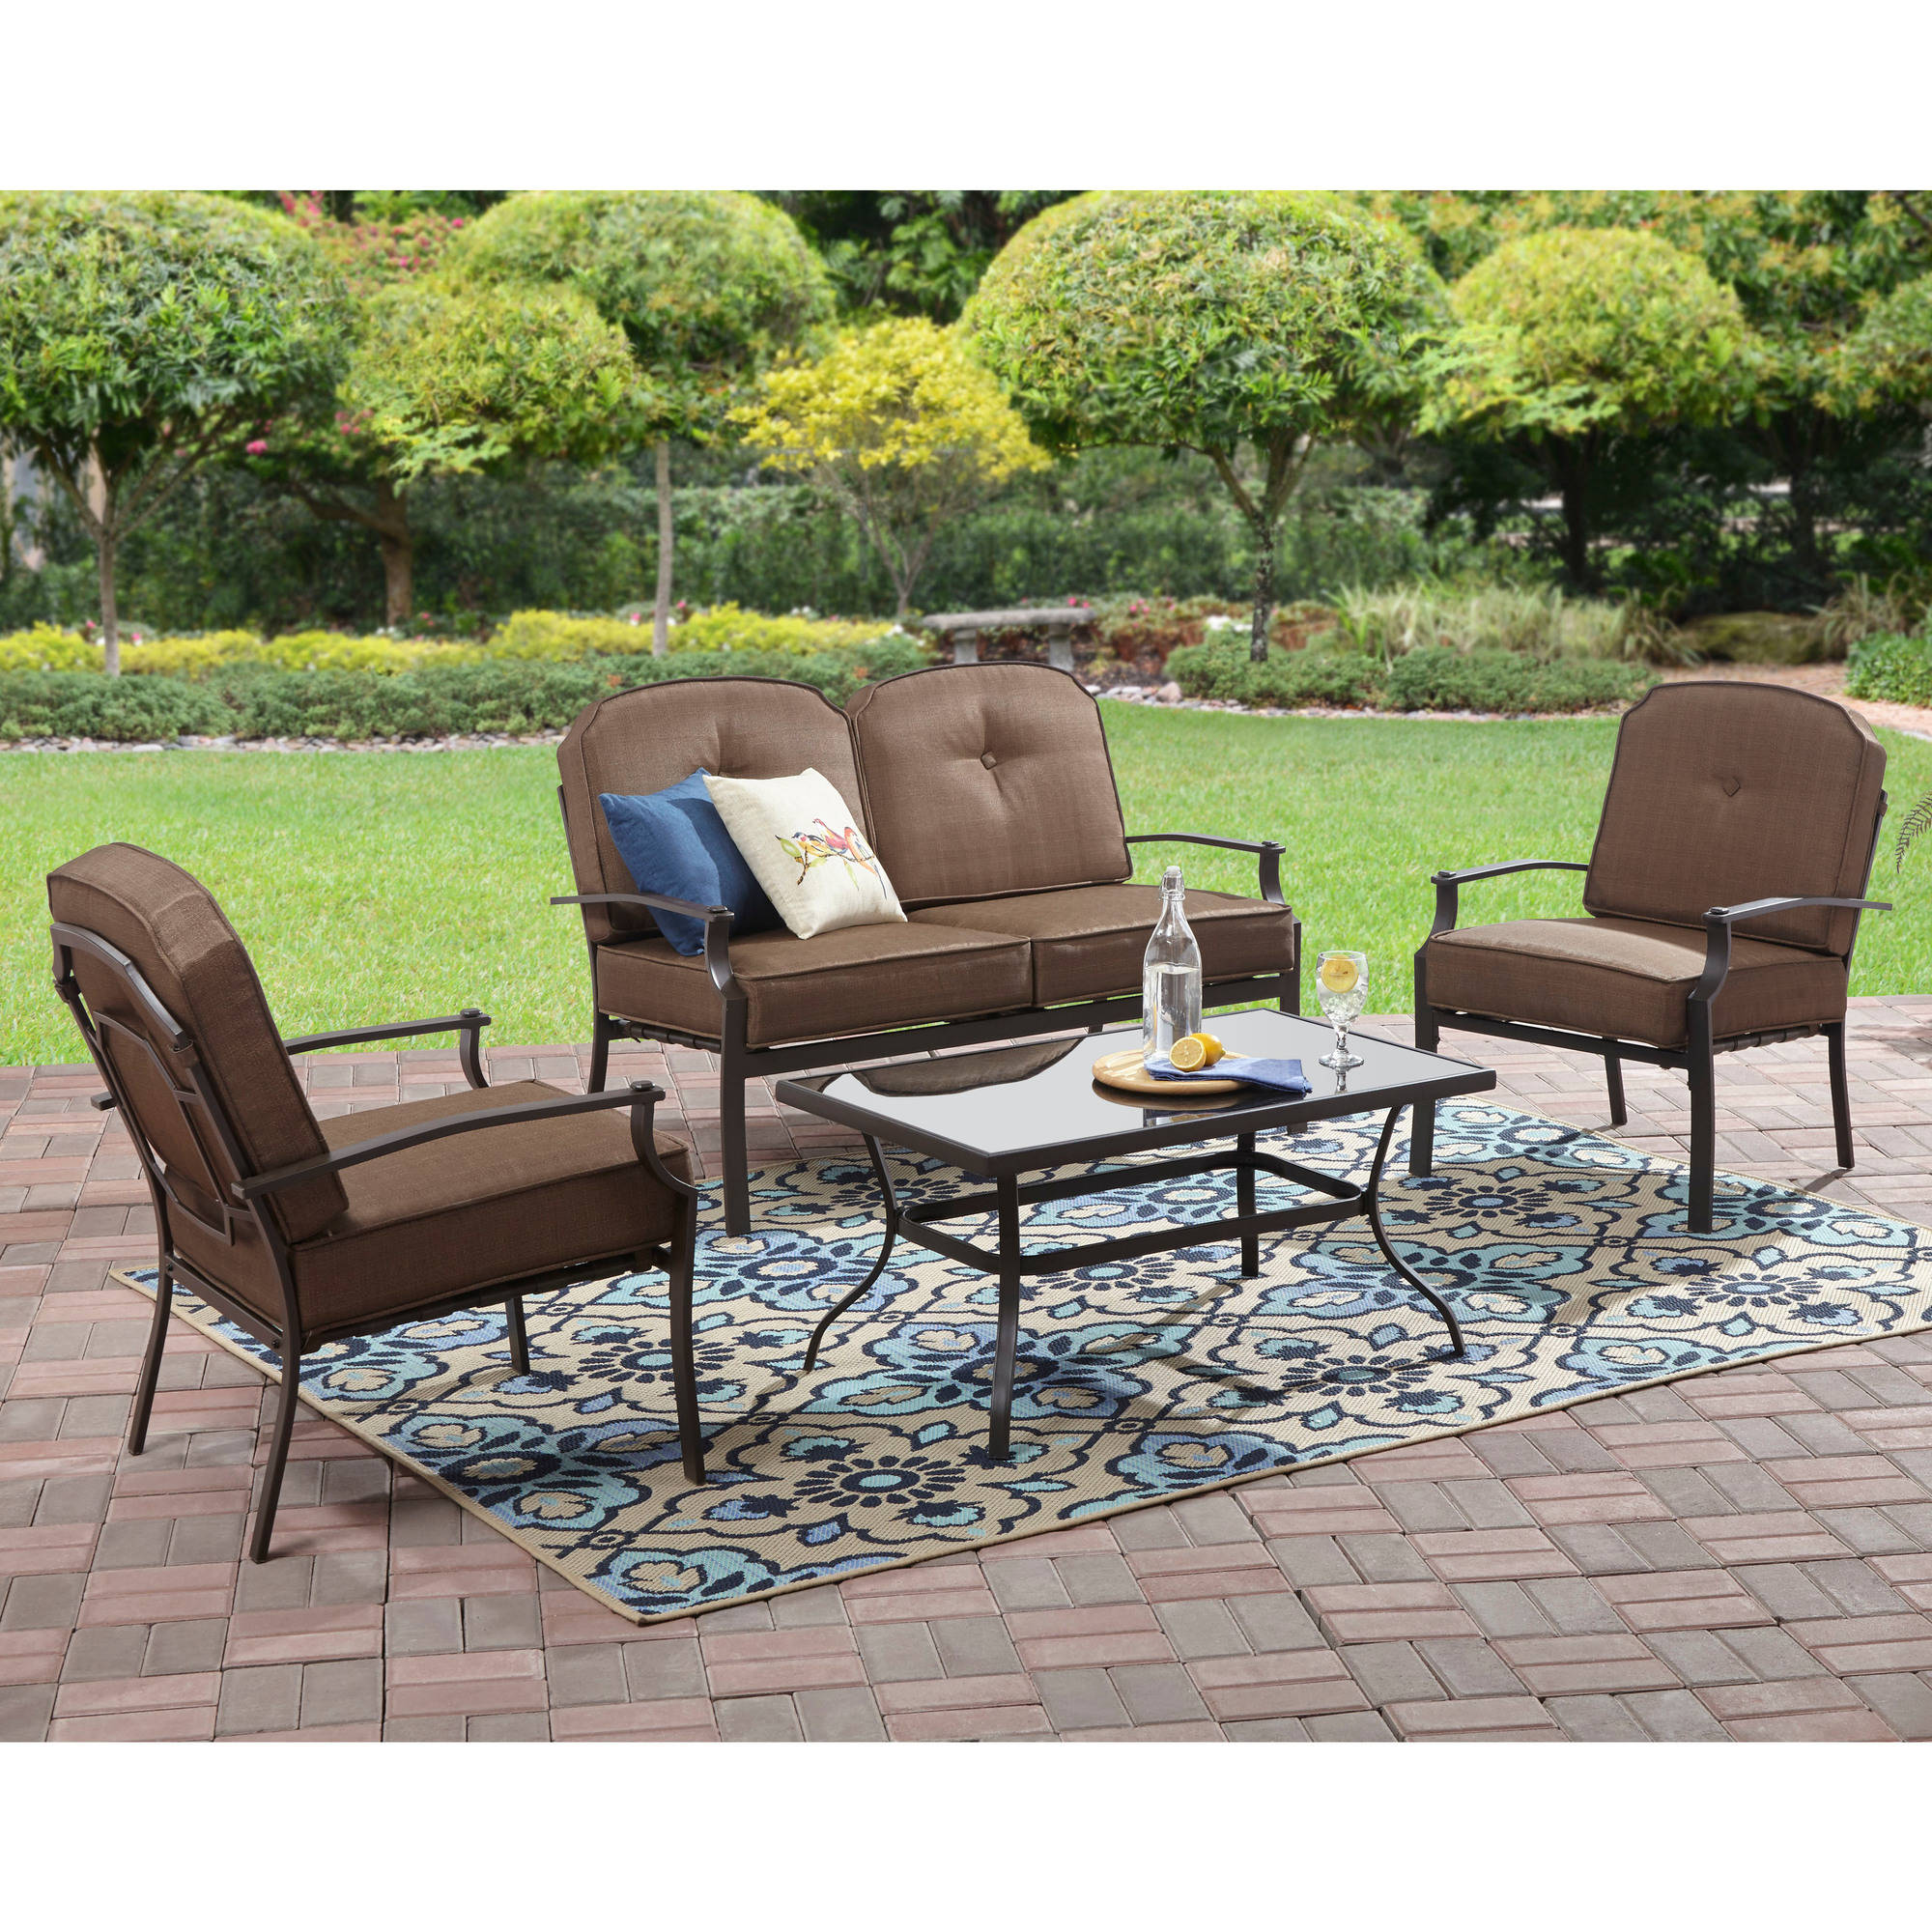 mainstays wentworth 4 piece metal patio furniture conversation set with cushions and pillows walmart com